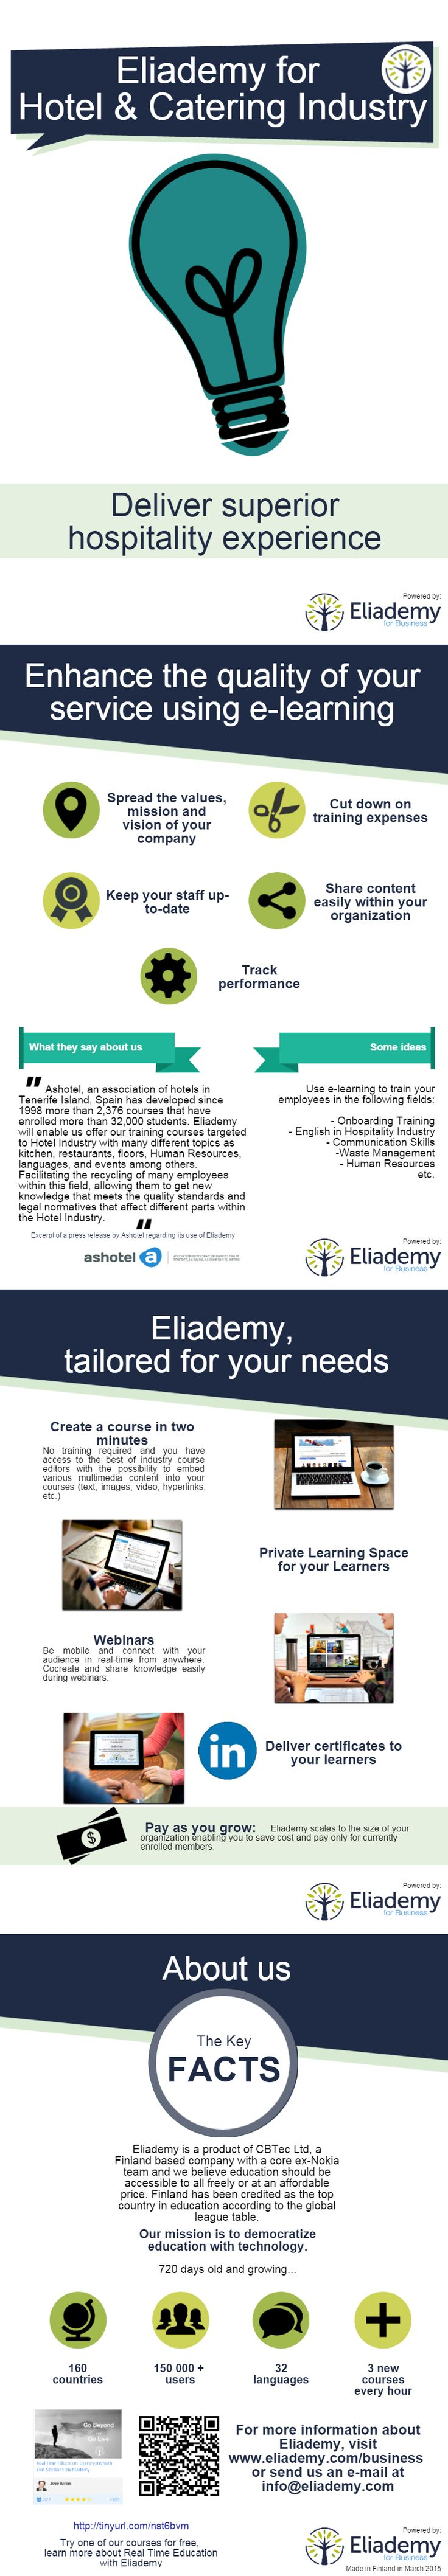 Eliademy for Hotel & Catering Industry #training #service #elearning #lms #brochure